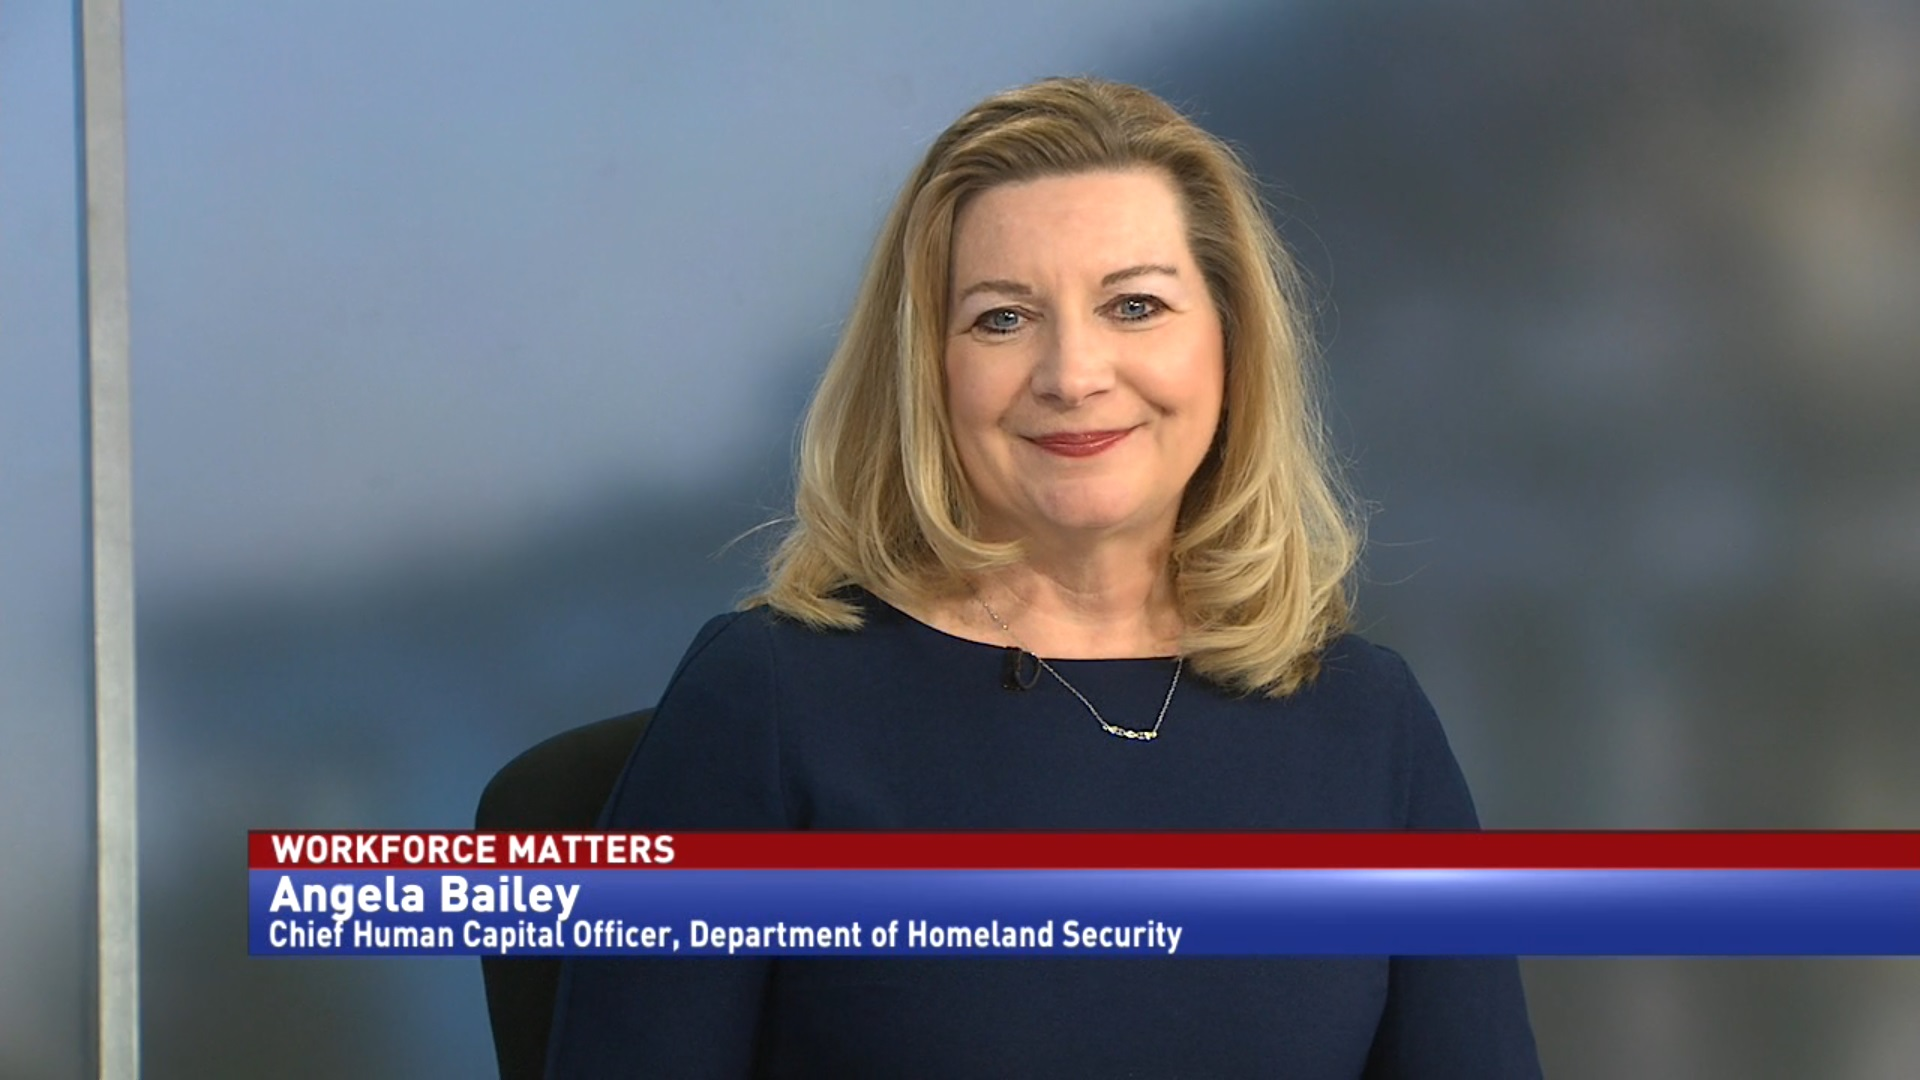 DHS Chief Human Capital Officer lays out top priorities